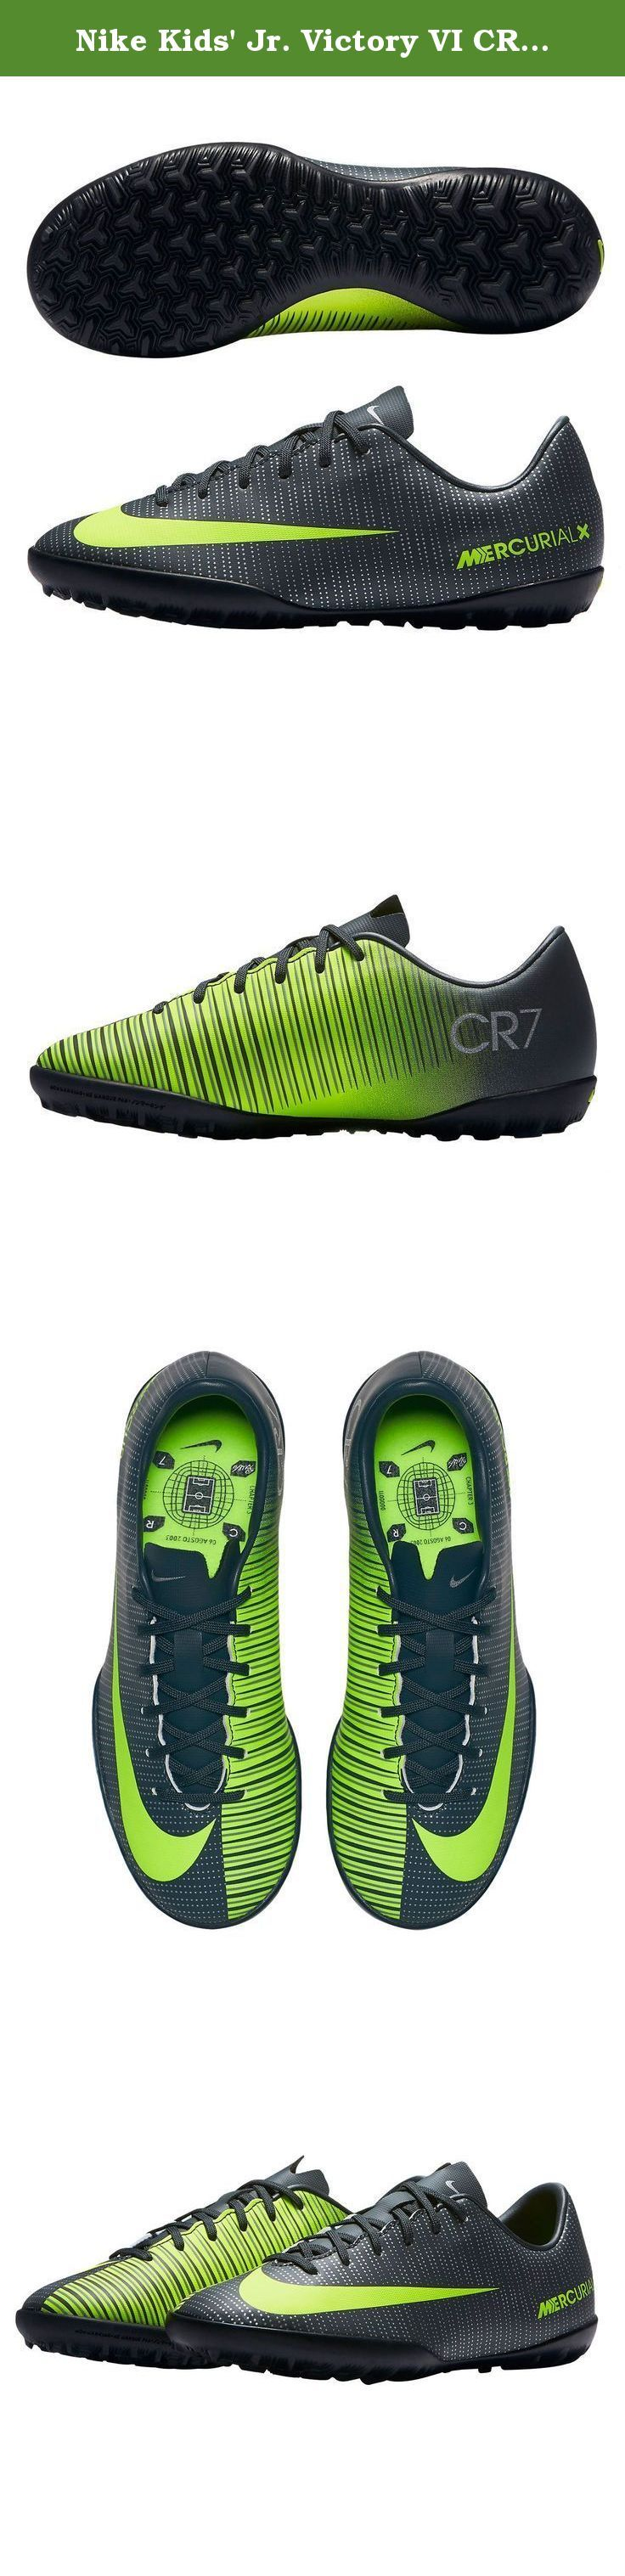 Nike Kids' Jr. Victory VI CR TF Turf Soccer Cleats (Sz. 5) Seaweed. Cristiano Ronaldo style Mercurial Victory Turf for kids.